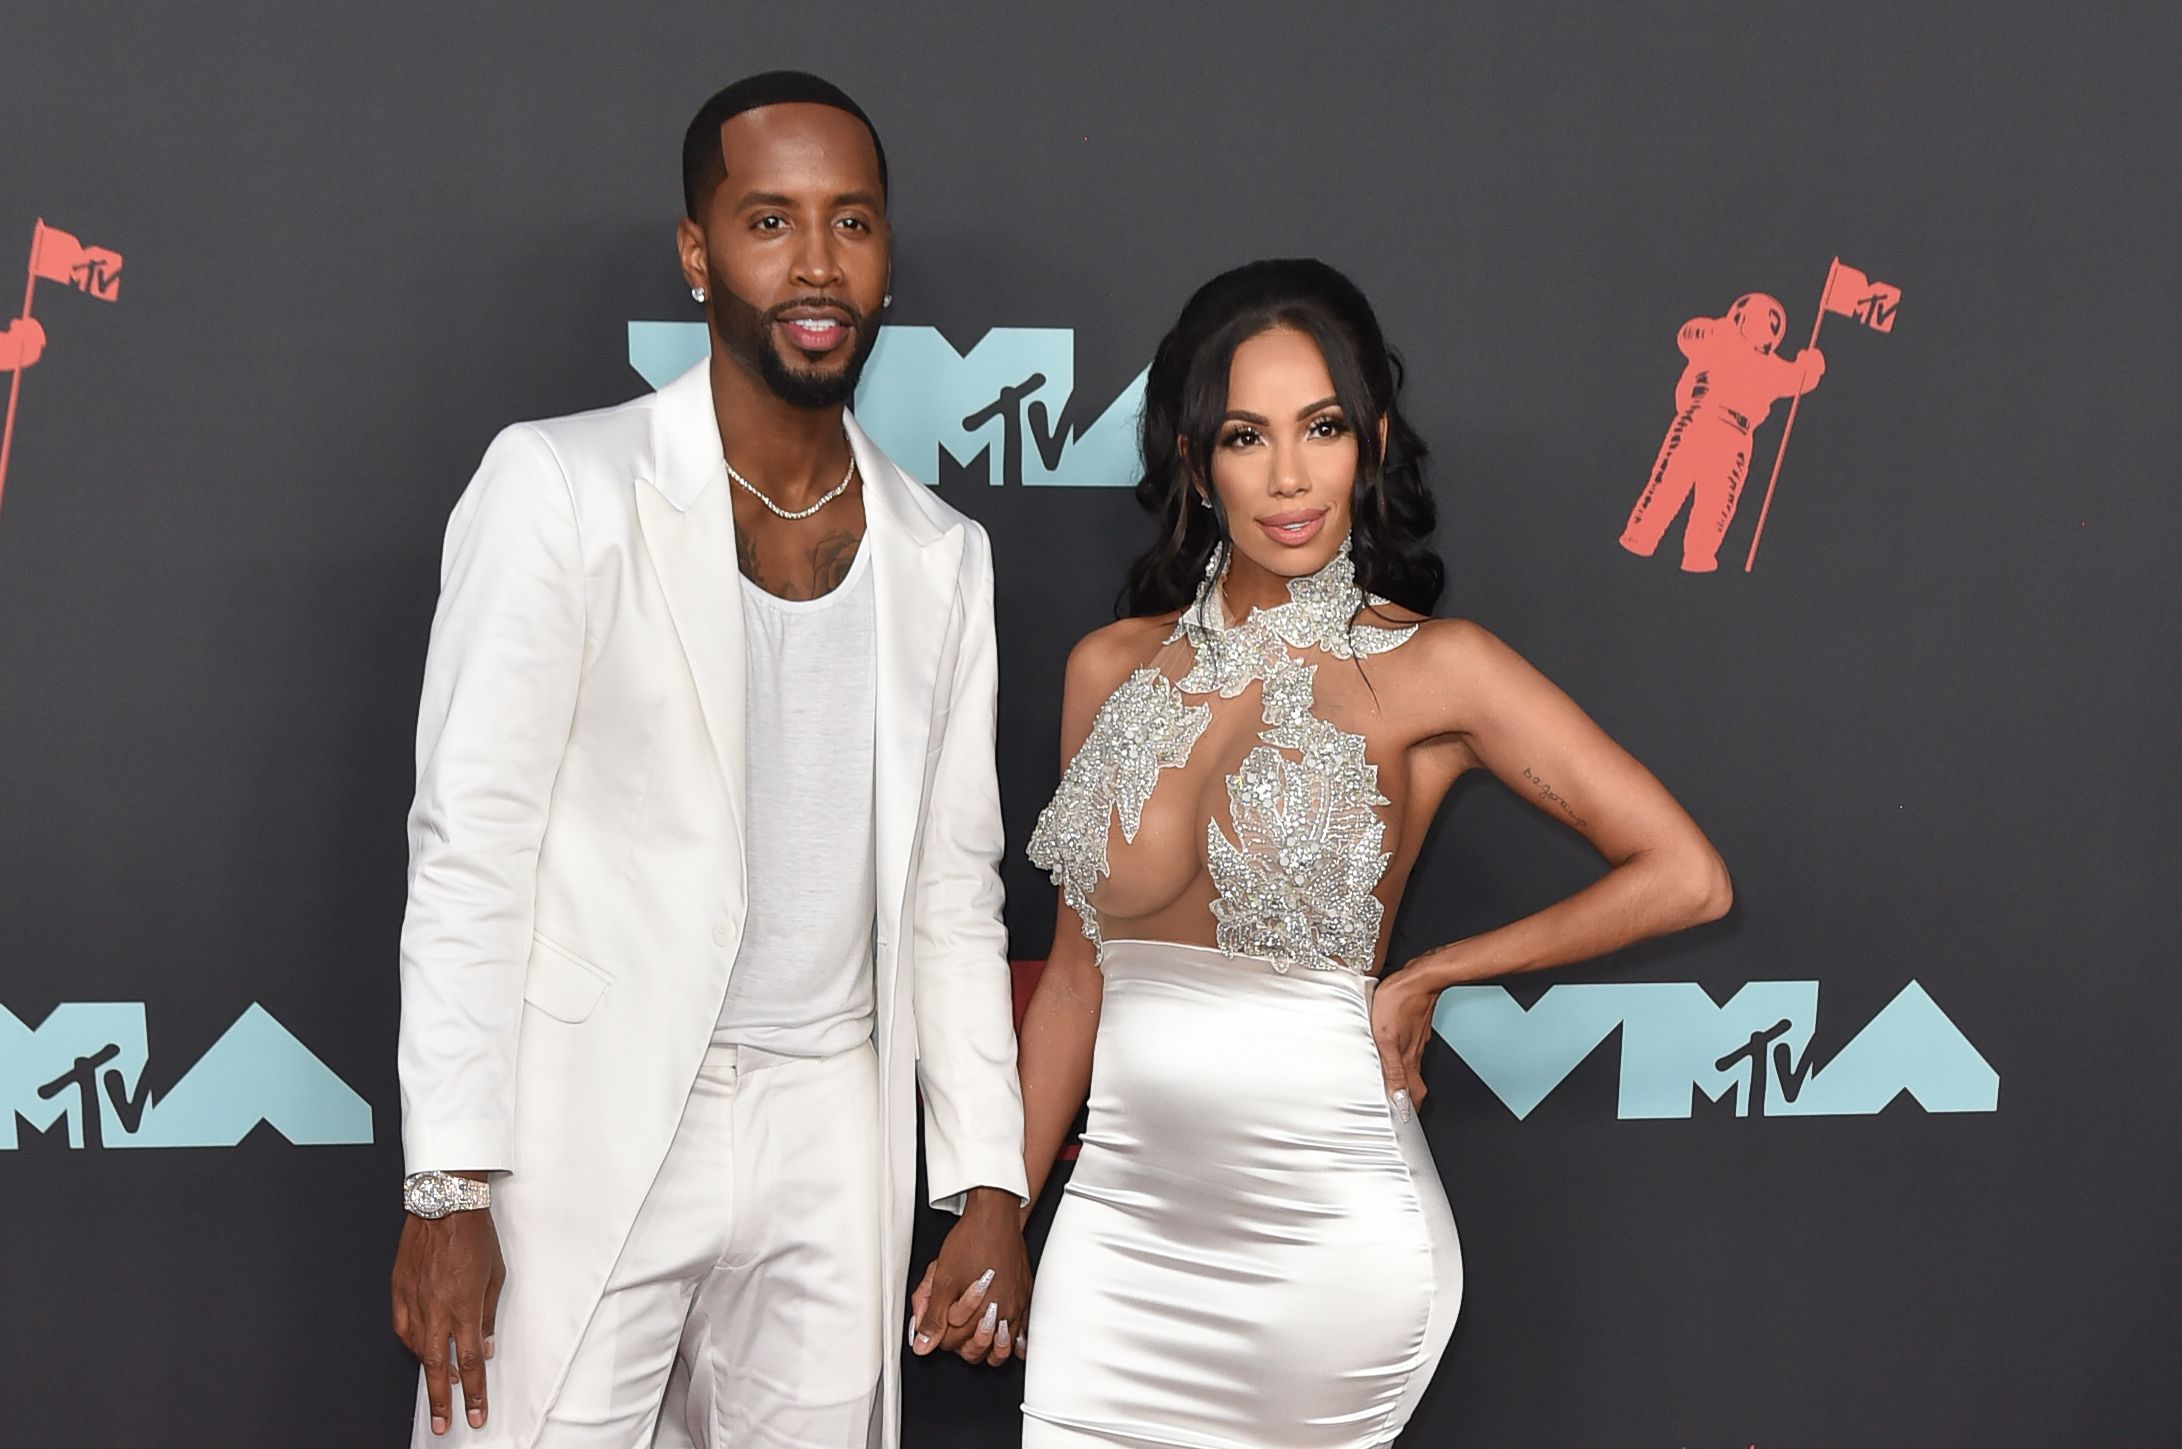 Safaree and Erica Mena at the MTV Video Music Awards on August 26, 2019 in Newark.   Photo: Getty Images